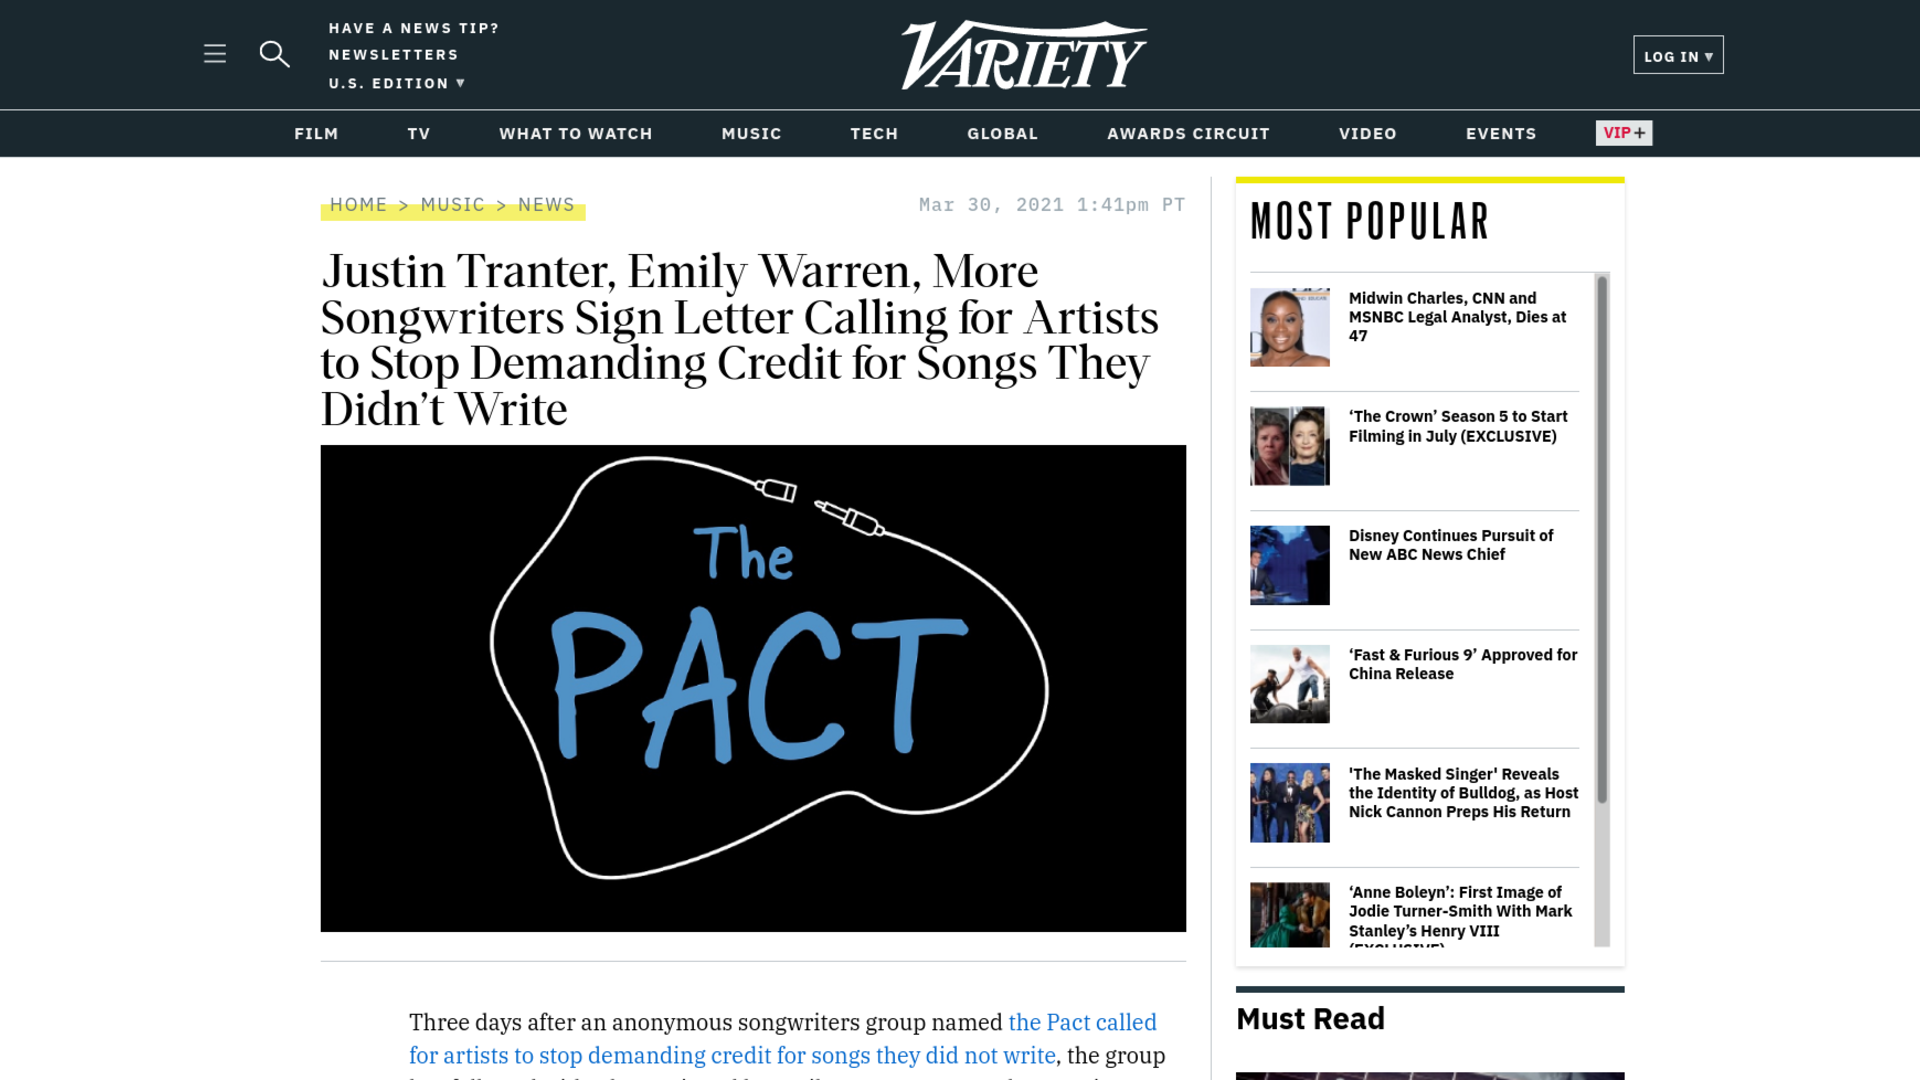 Fairness Rocks News Justin Tranter, Emily Warren, More Songwriters Sign Letter Calling for Artists to Stop Demanding Credit for Songs They Didn't Write